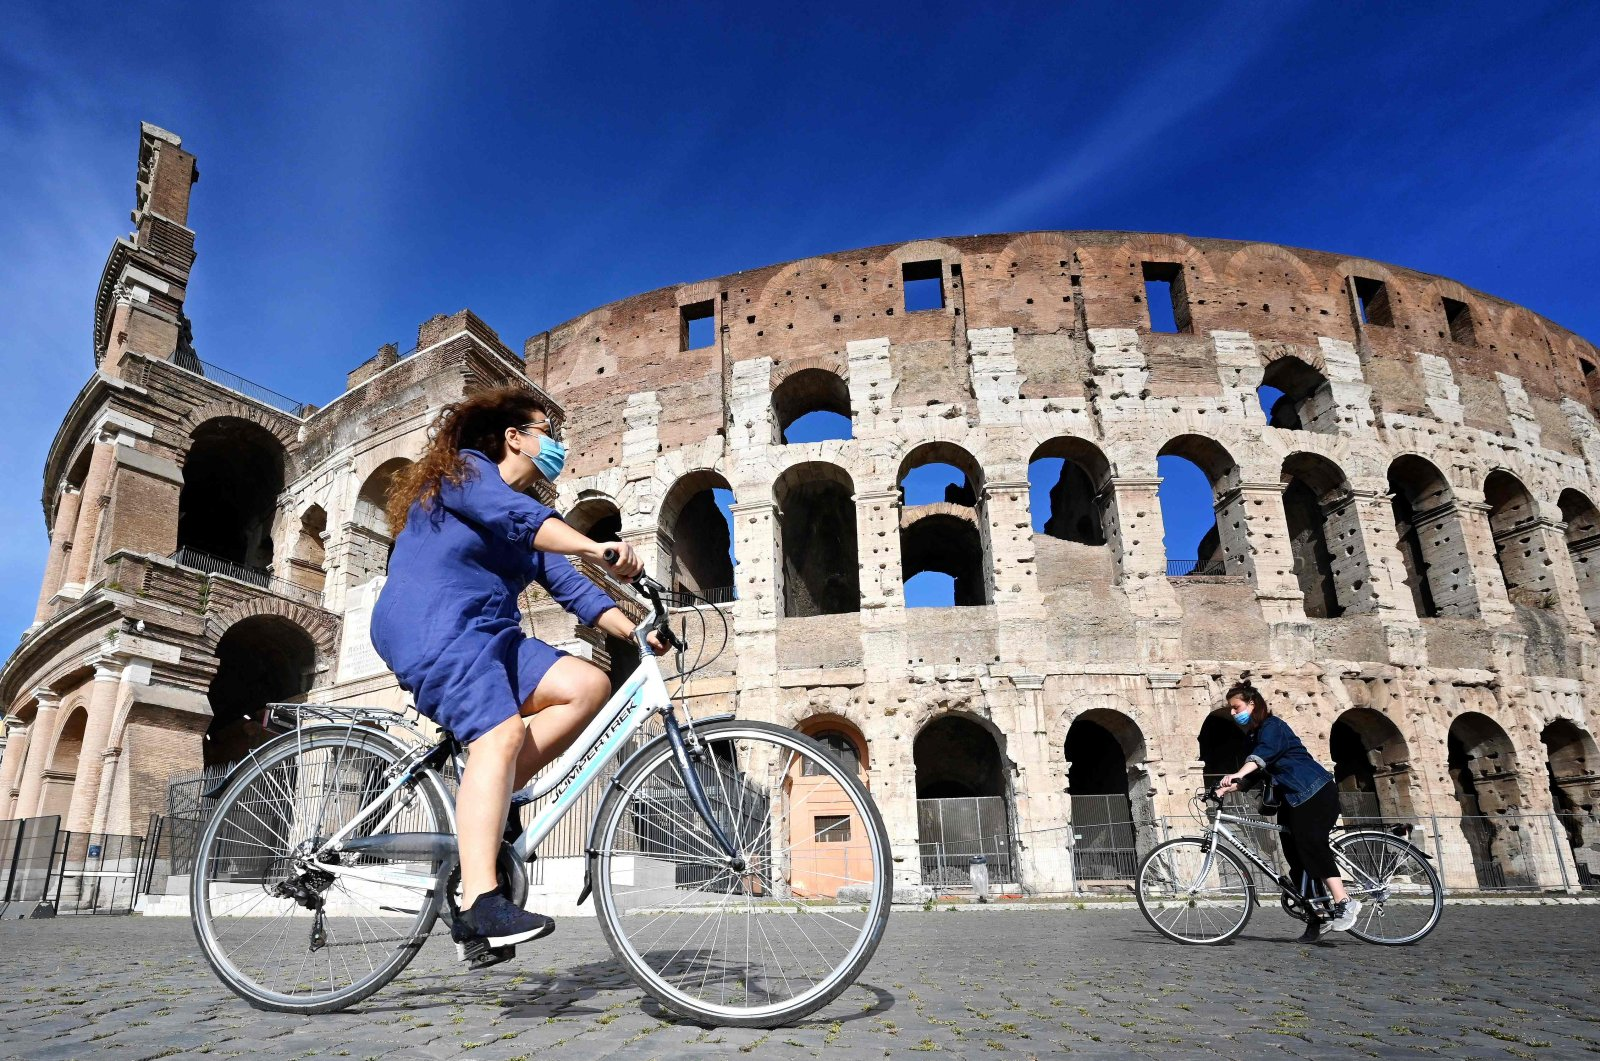 Women ride a bicycle past the Colosseum monument in Rome on May 8, 2020, during the country's lockdown aimed at curbing the spread of the COVID-19 infection, caused by the novel coronavirus. (AFP Photo)